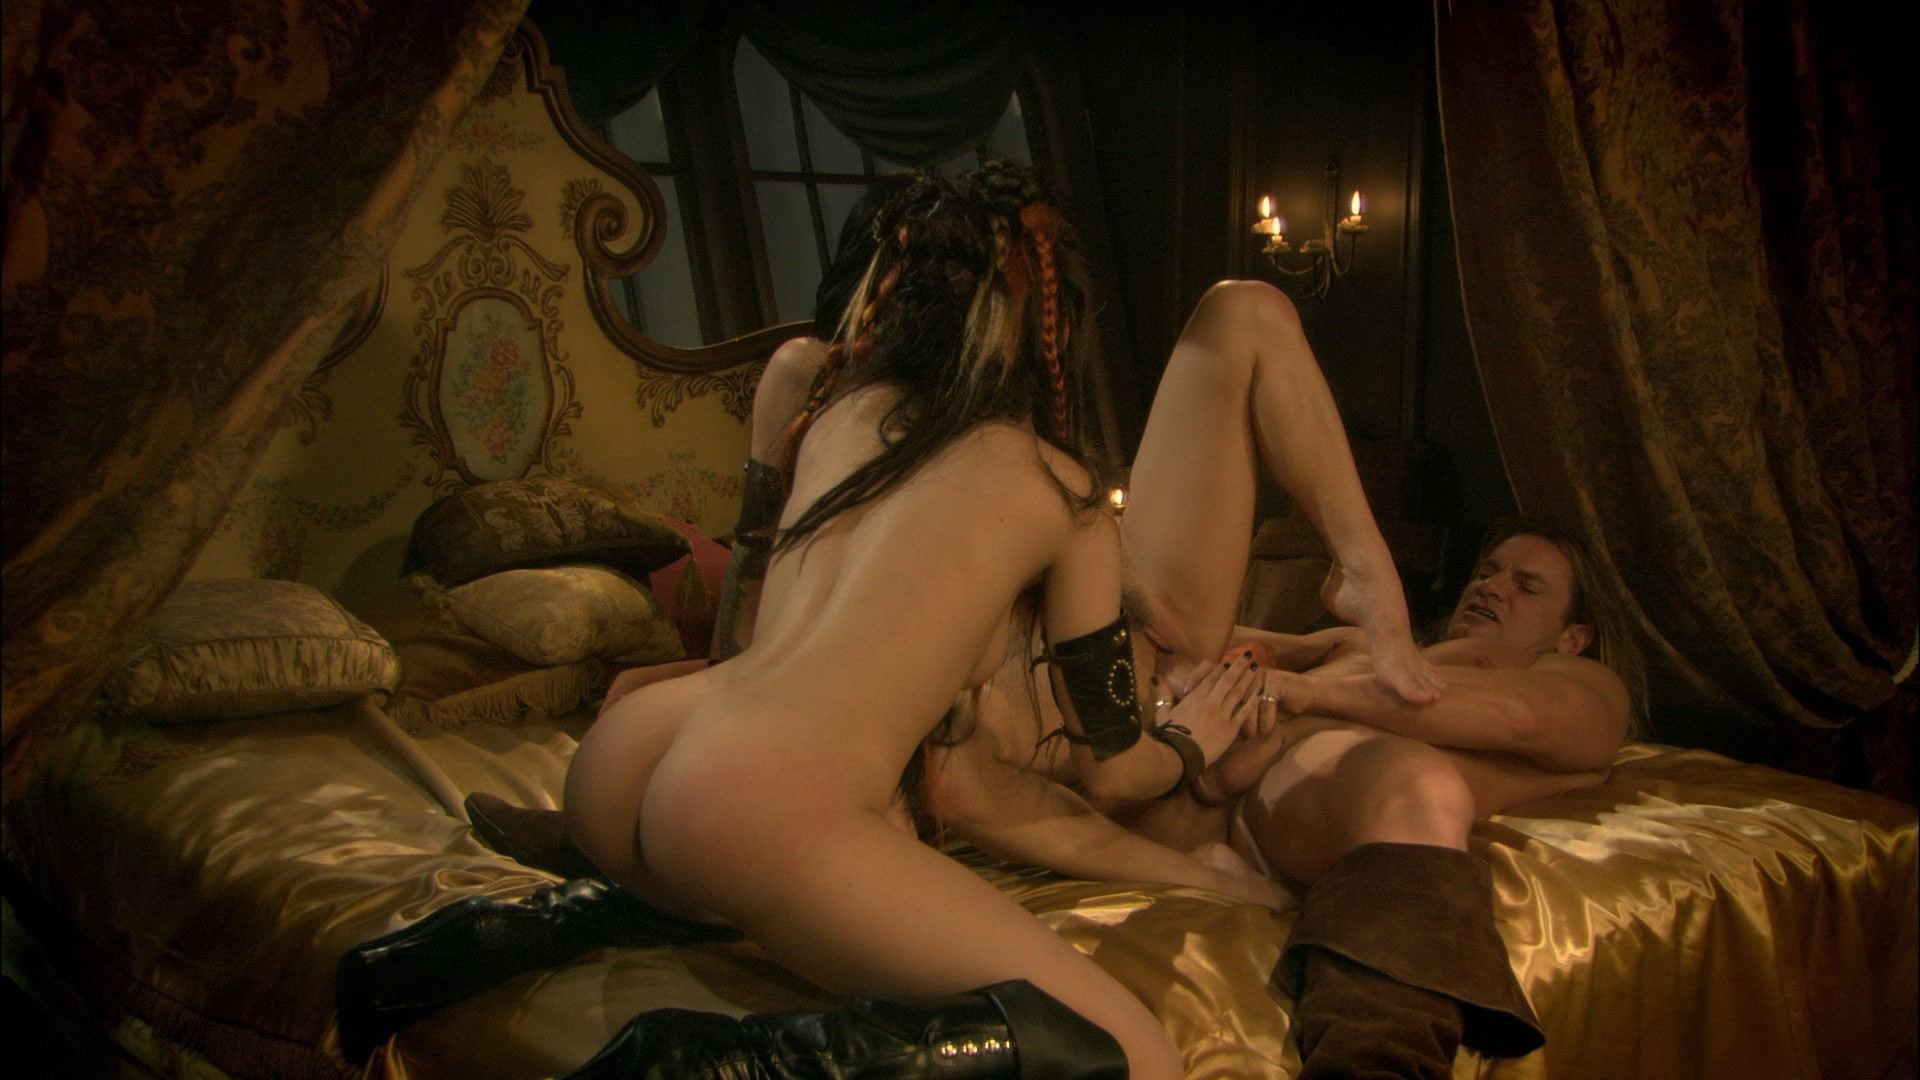 streaming free mature porn